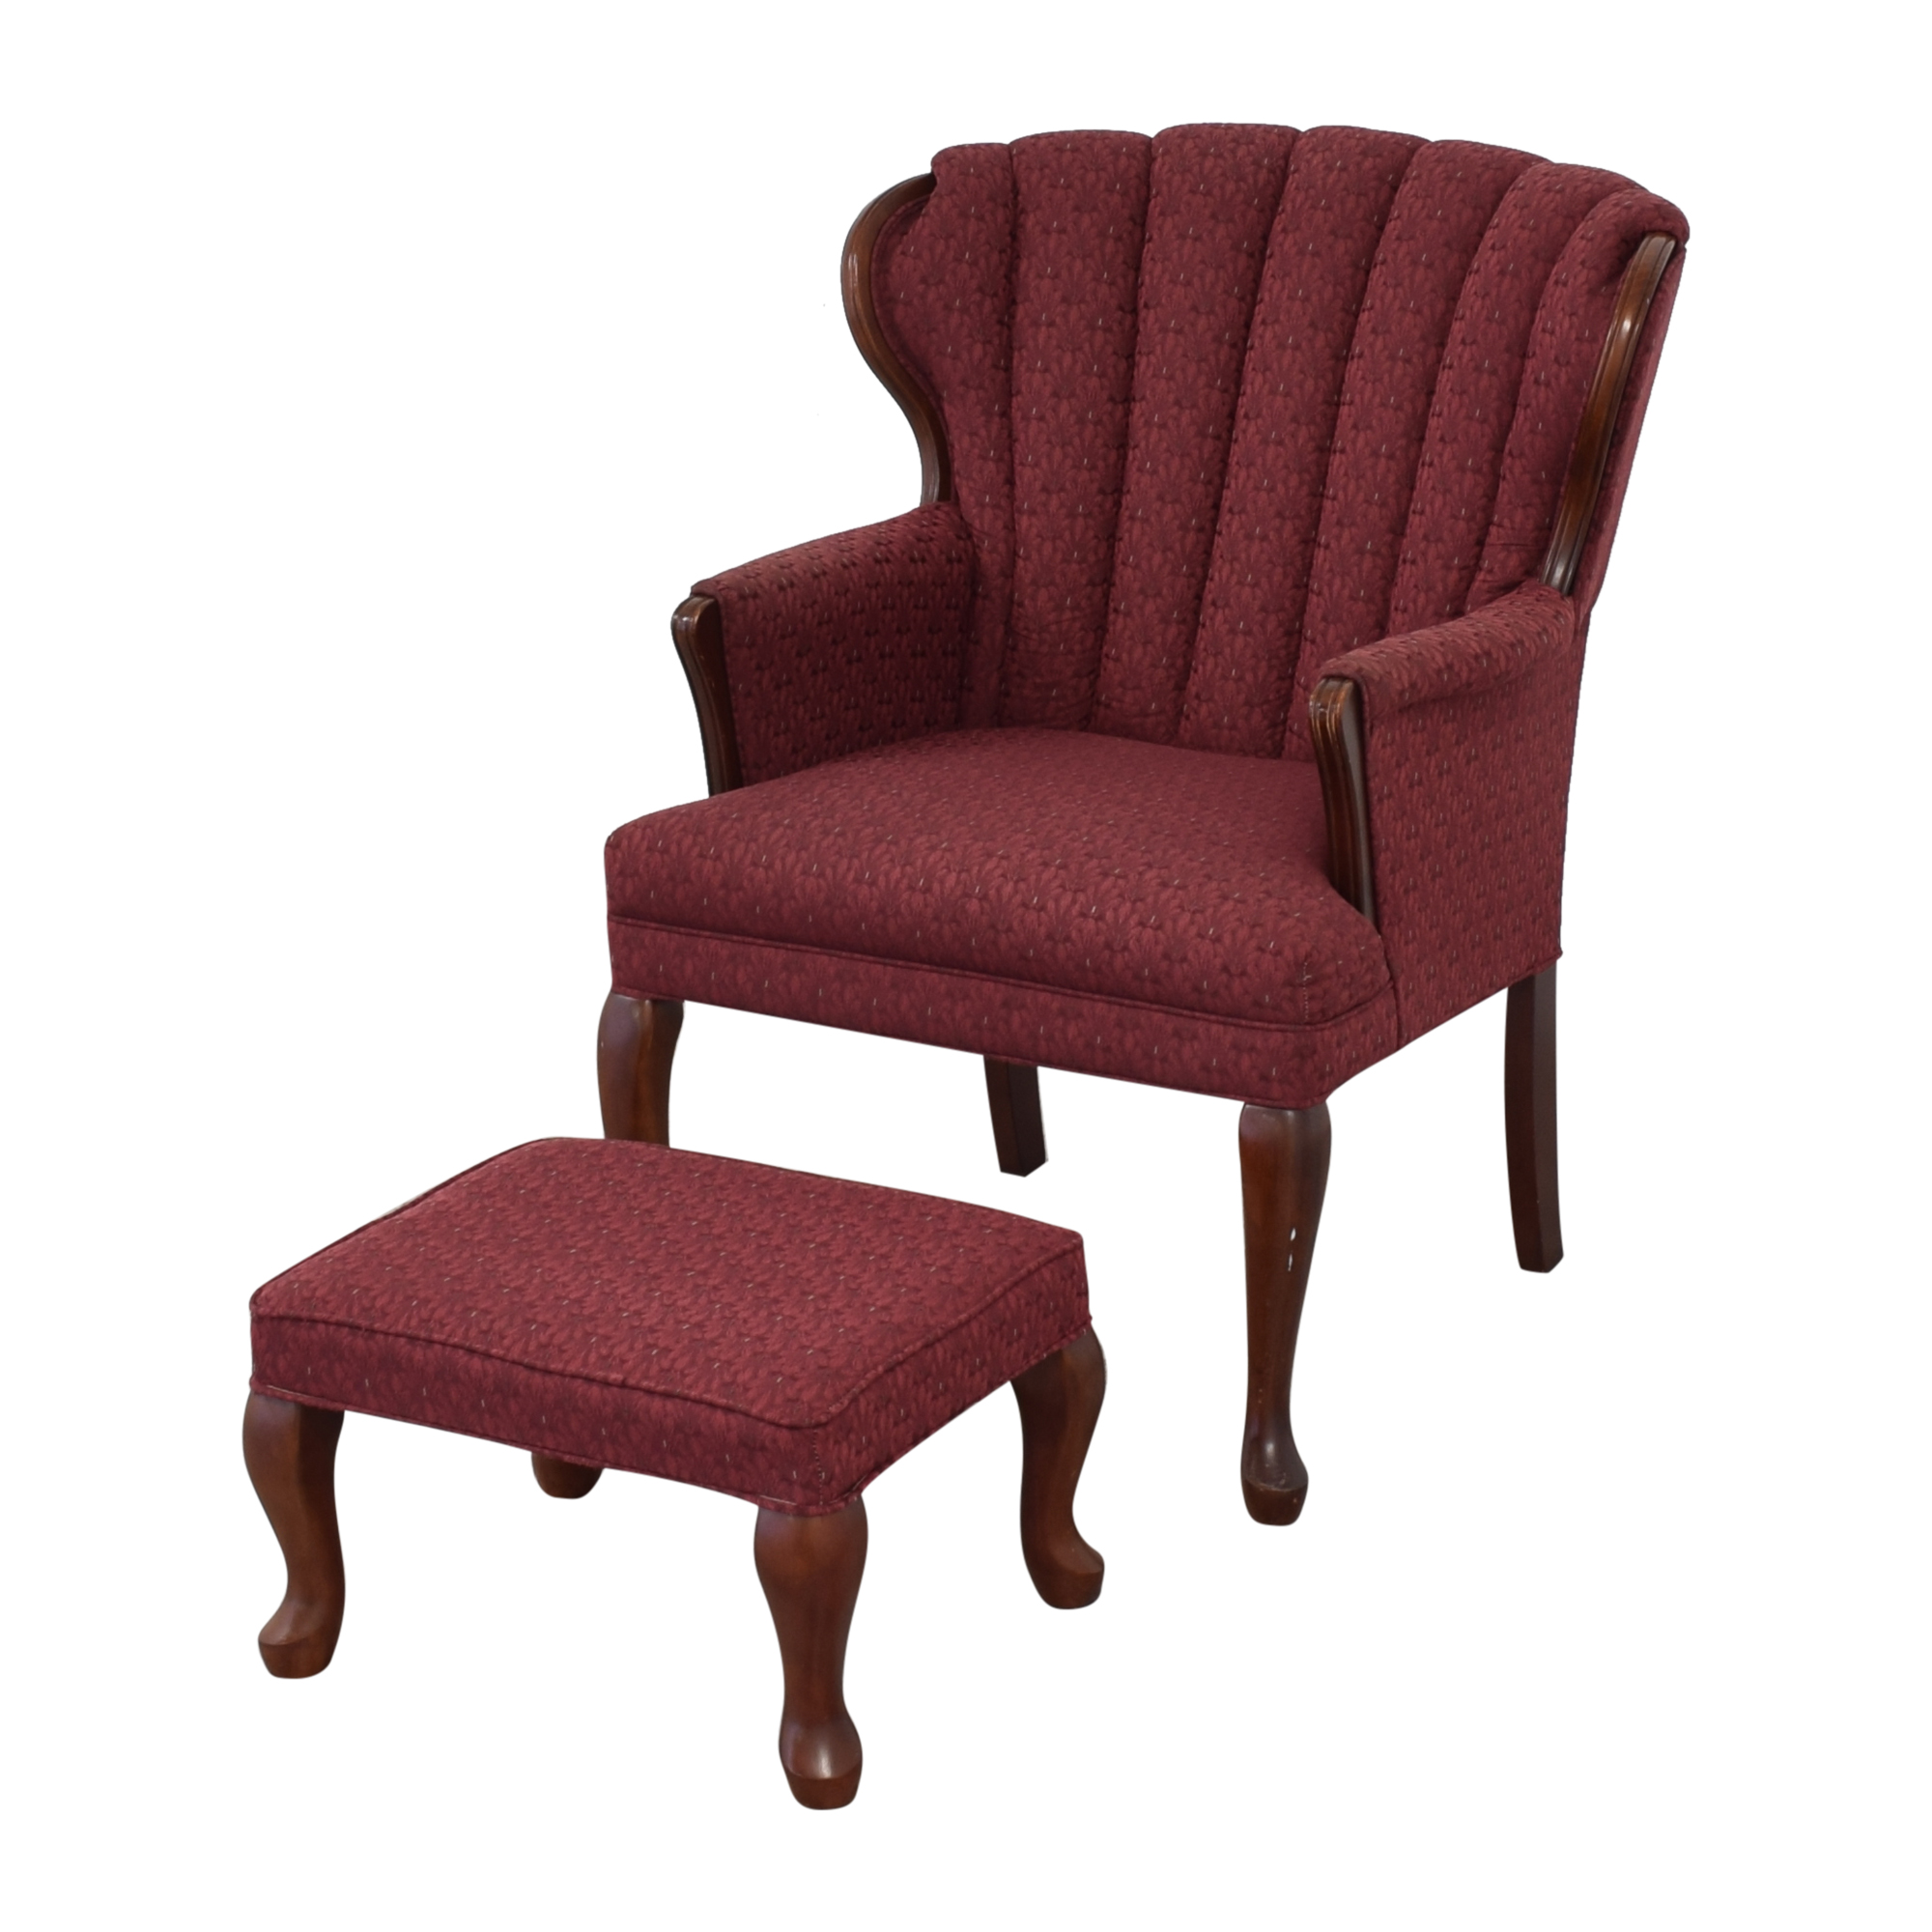 Best Chairs Best Chairs Queen Anne Scallop-Back Chair and Ottoman Chairs